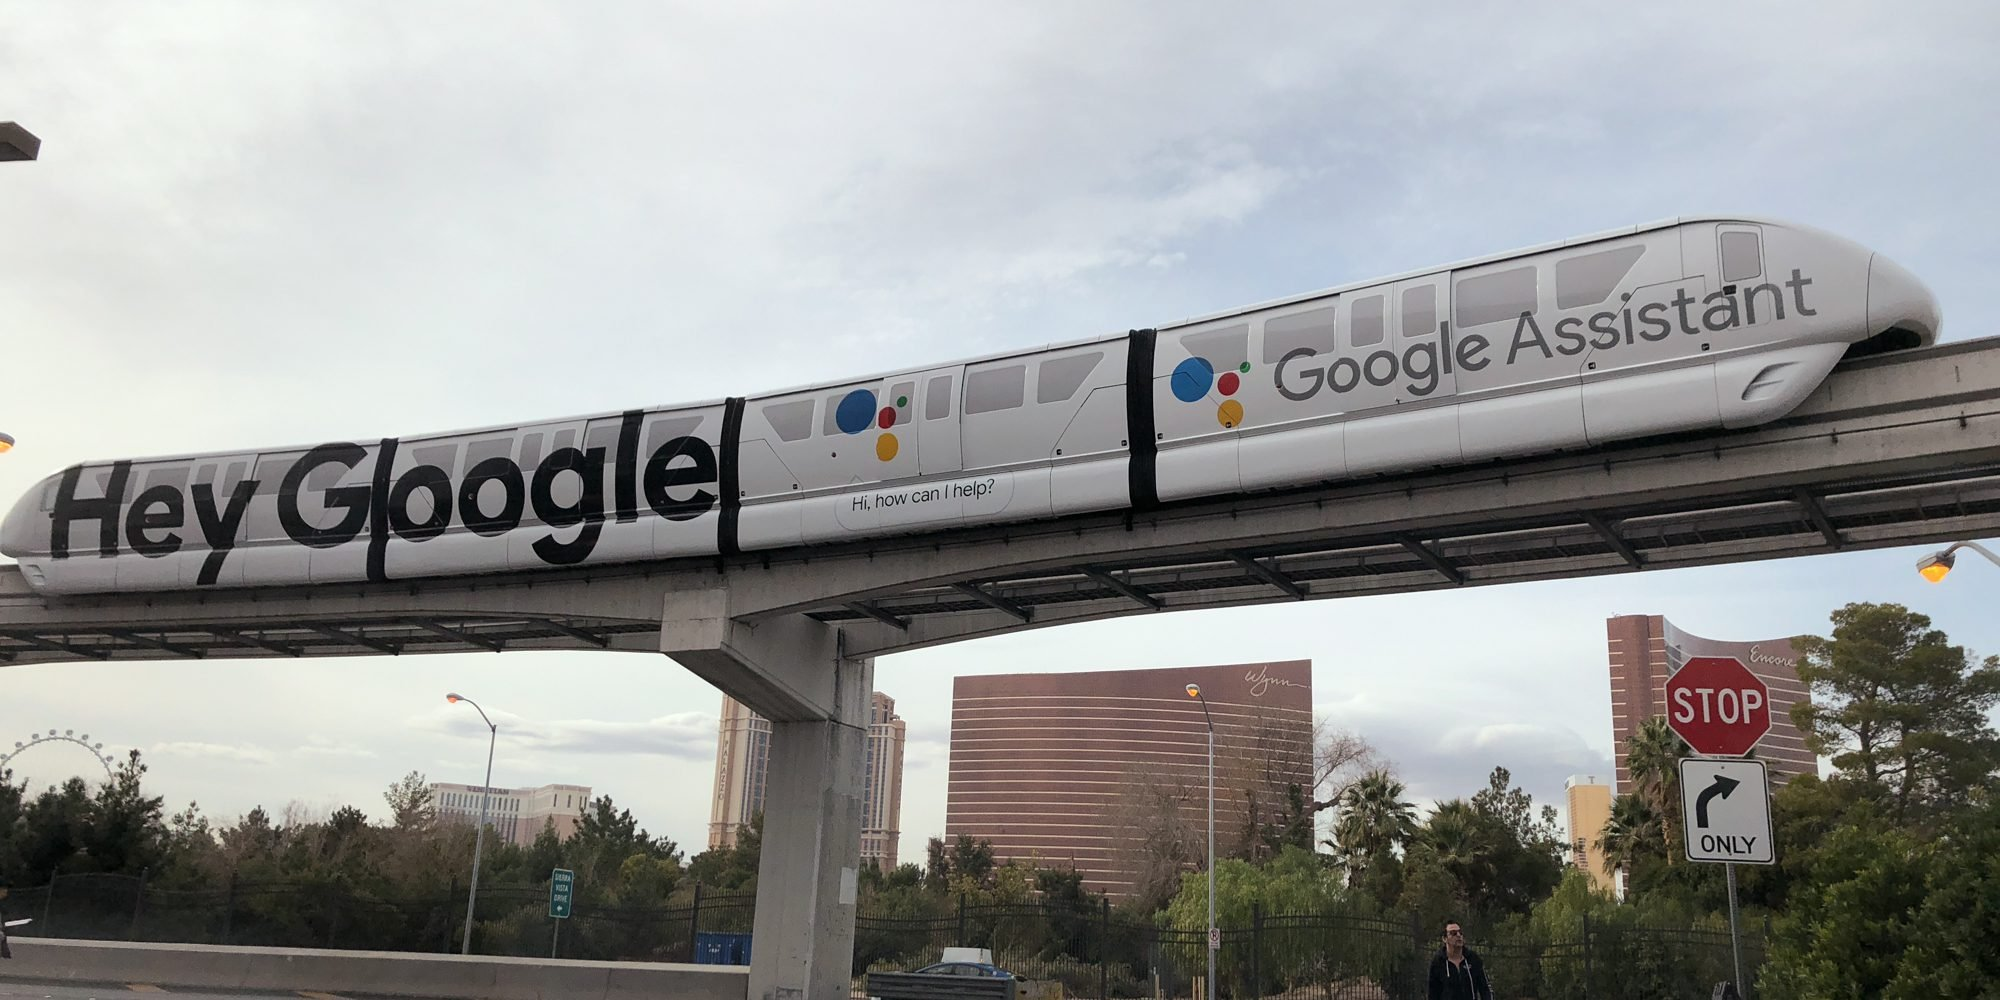 Monorail Google Assistant au CES 2018 par 9to5Google